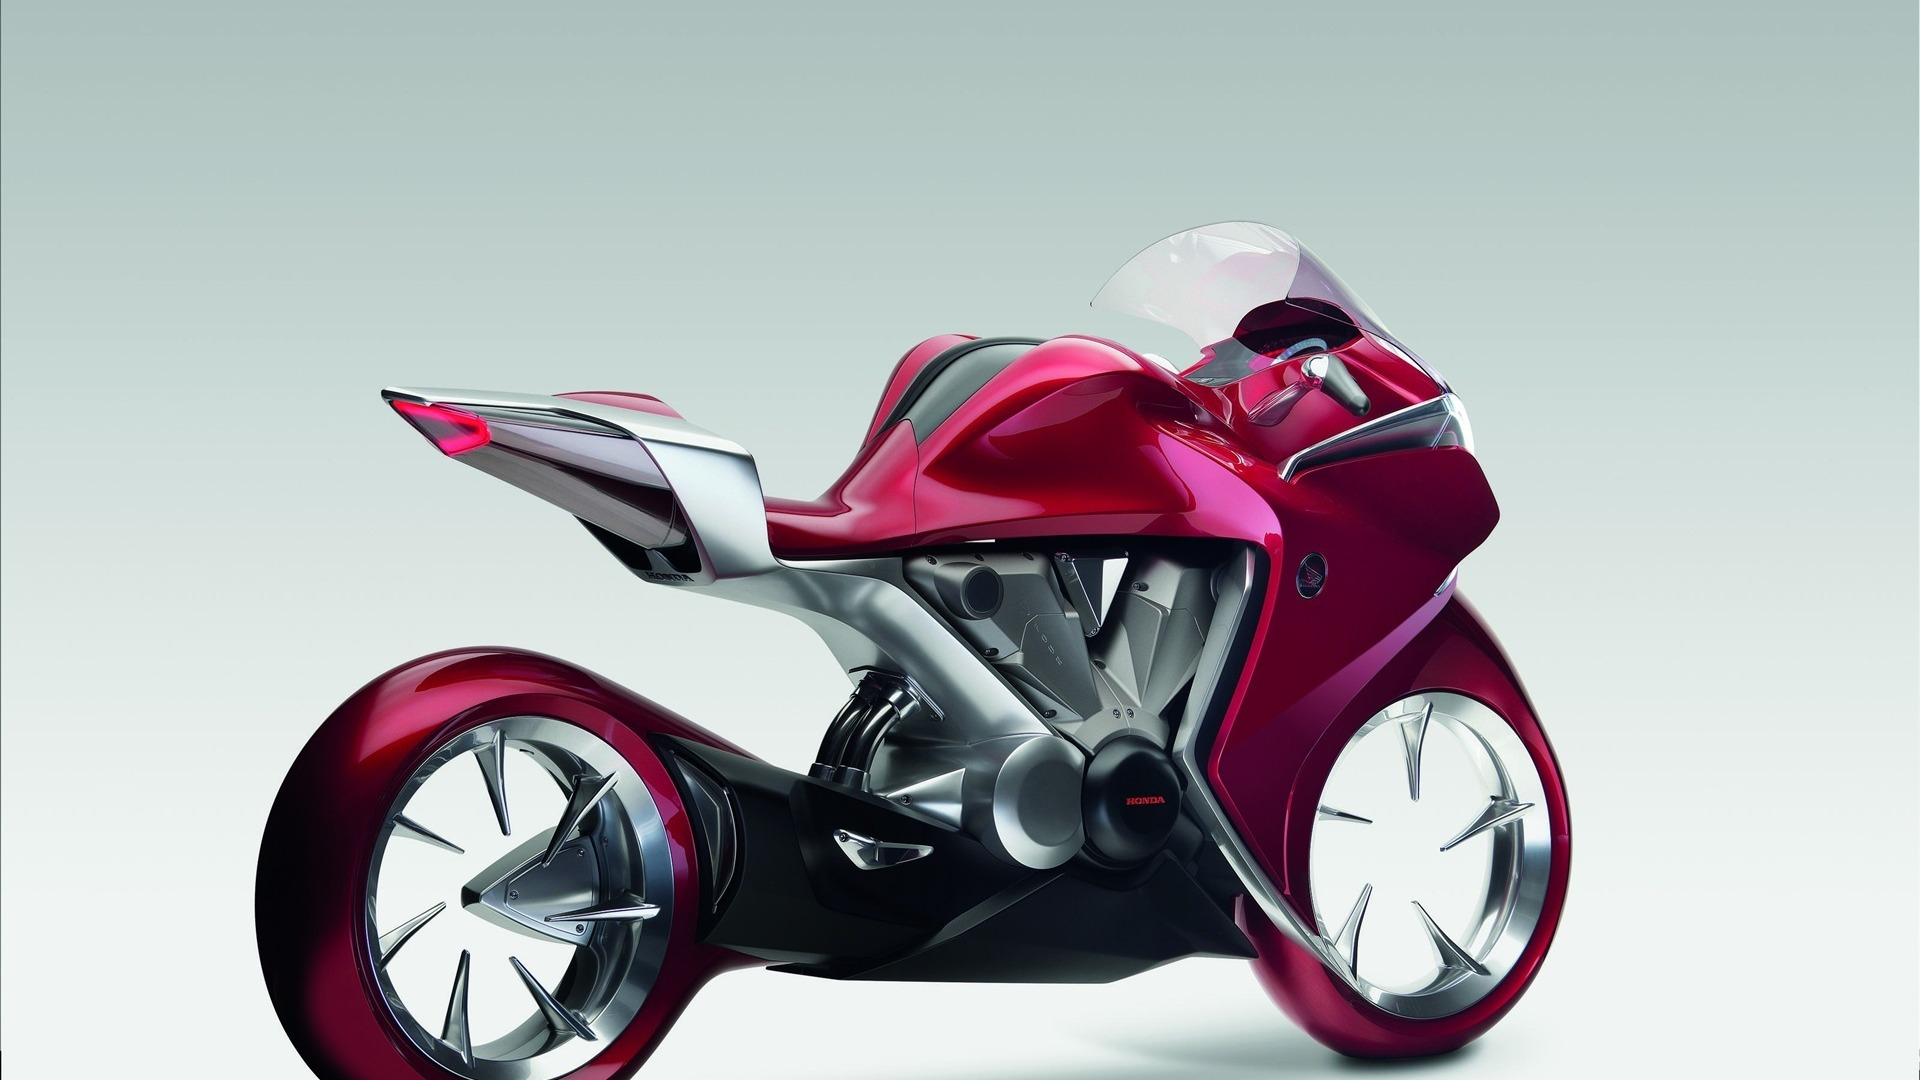 Cool Hd Pink Motorcycle Hd Wallpapers